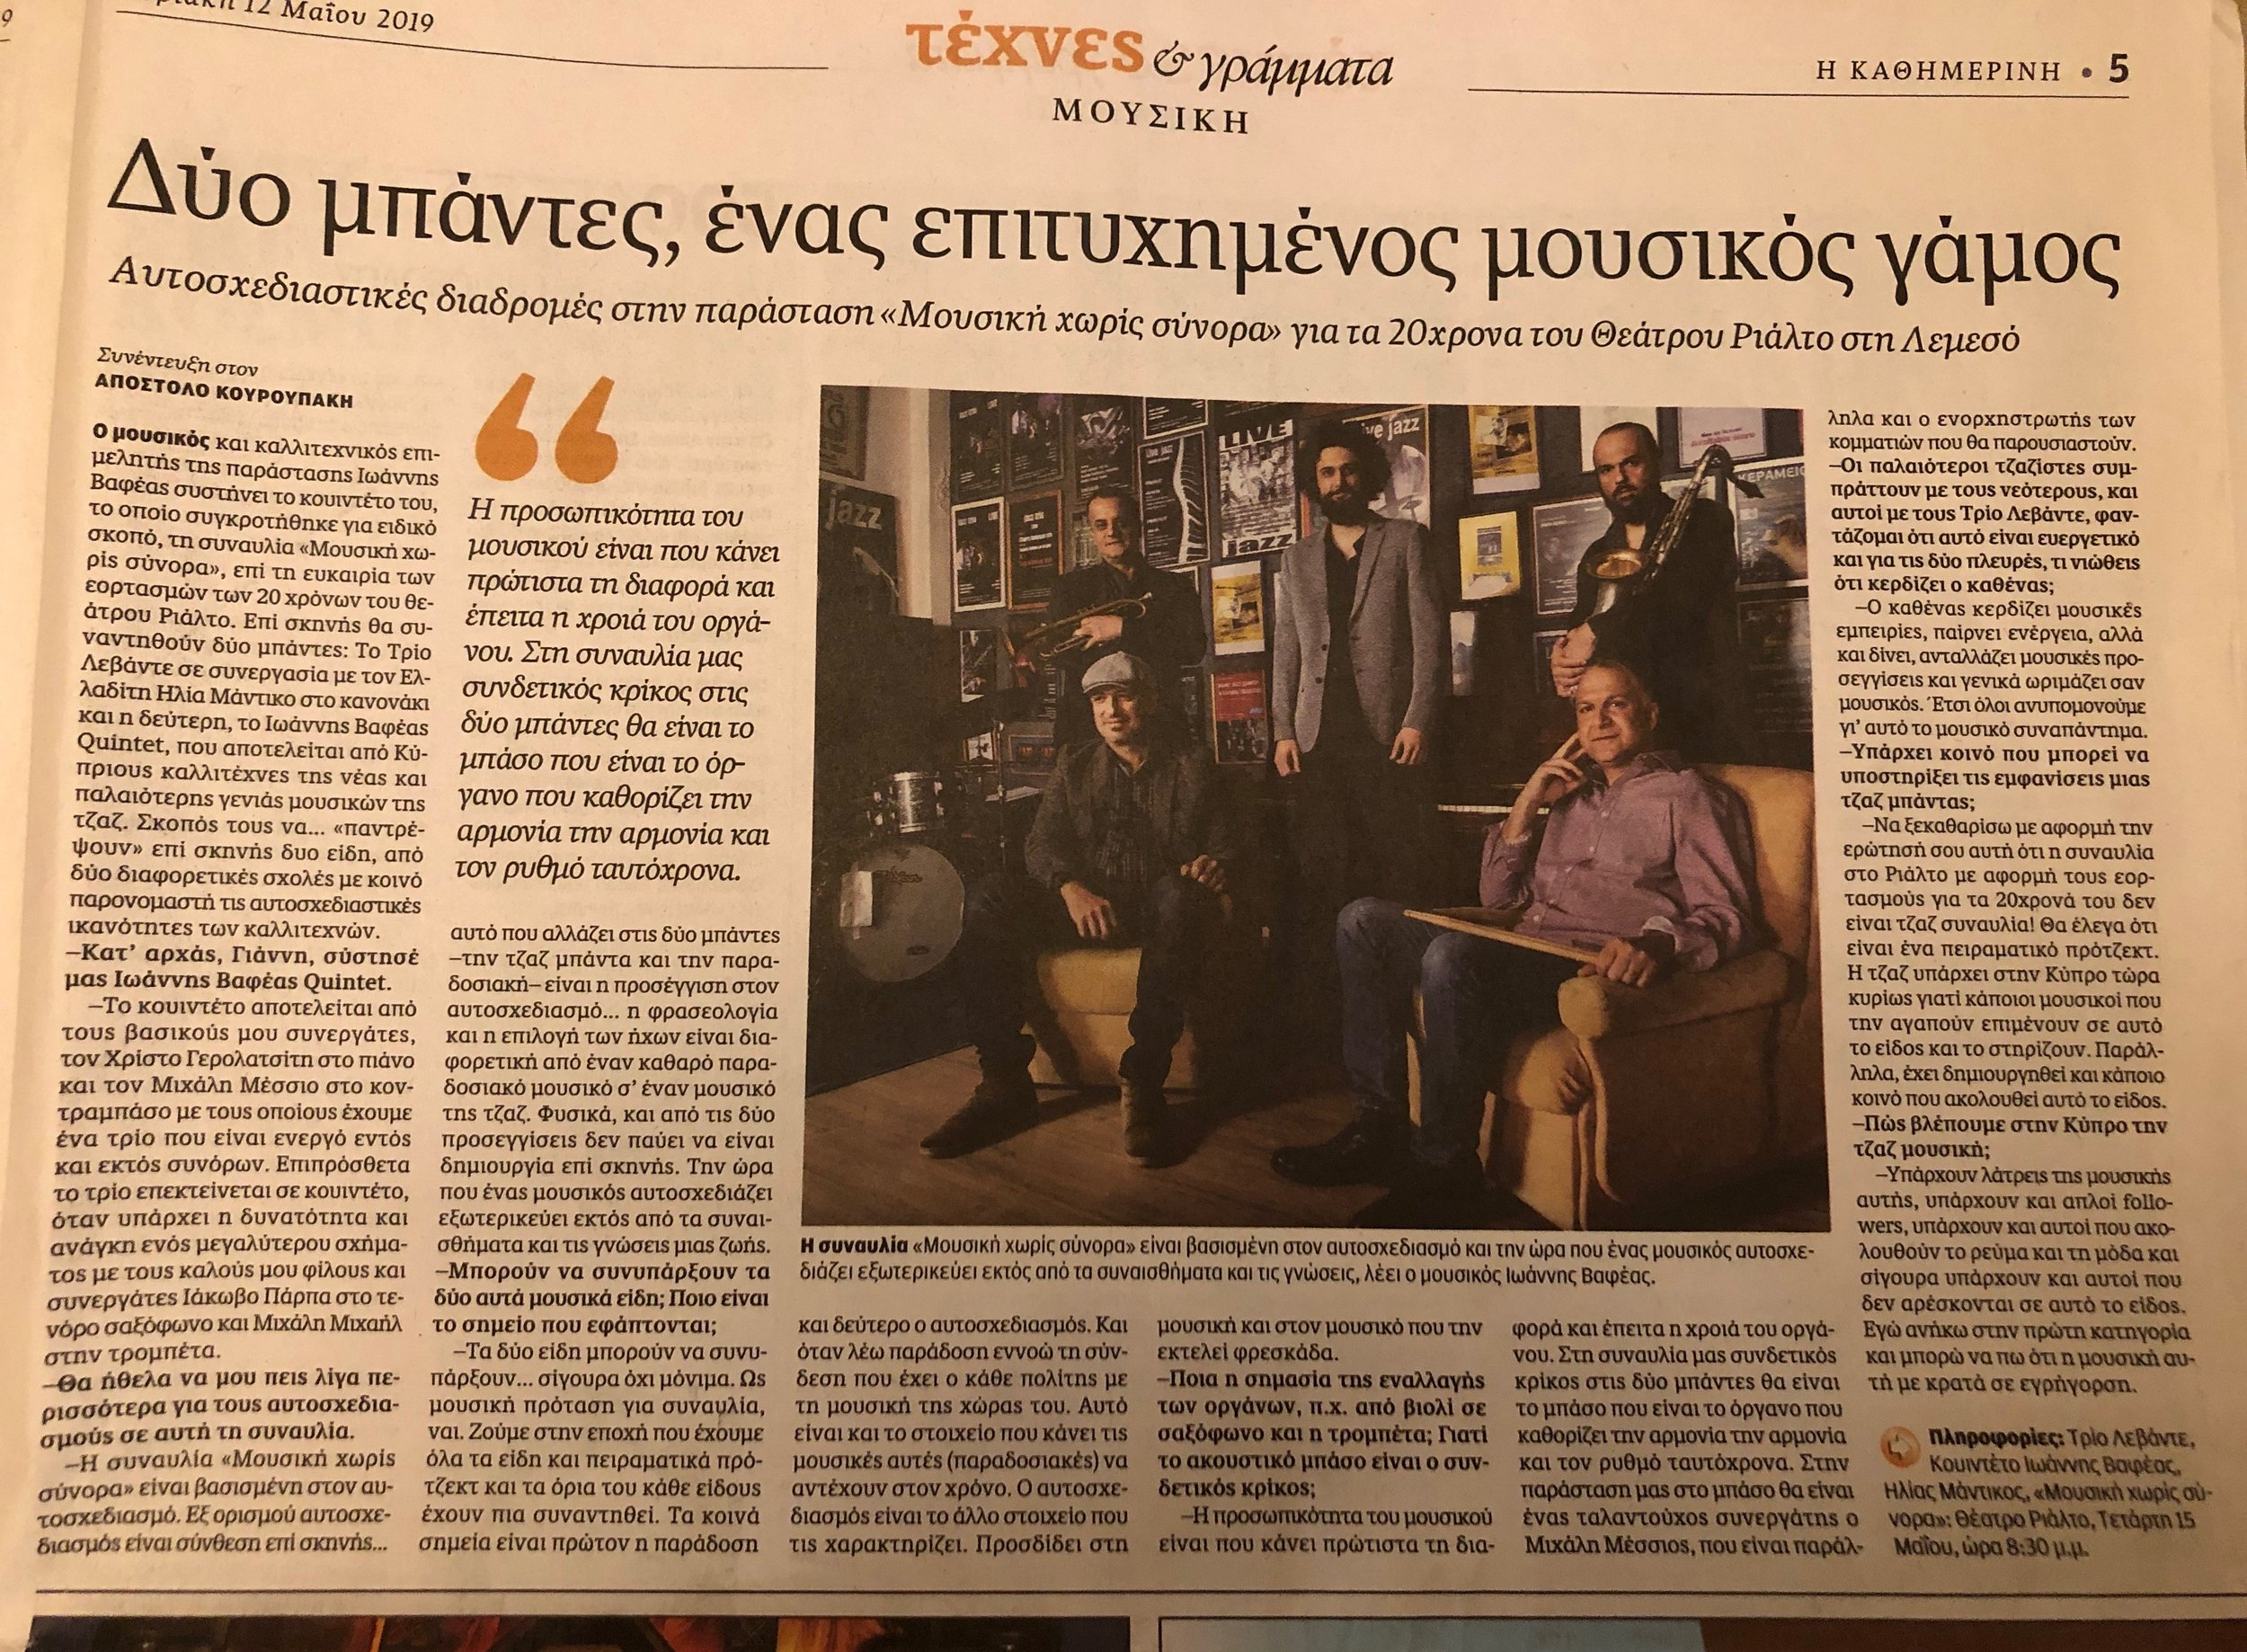 KATHIMERINI PUBLICATION.jpg